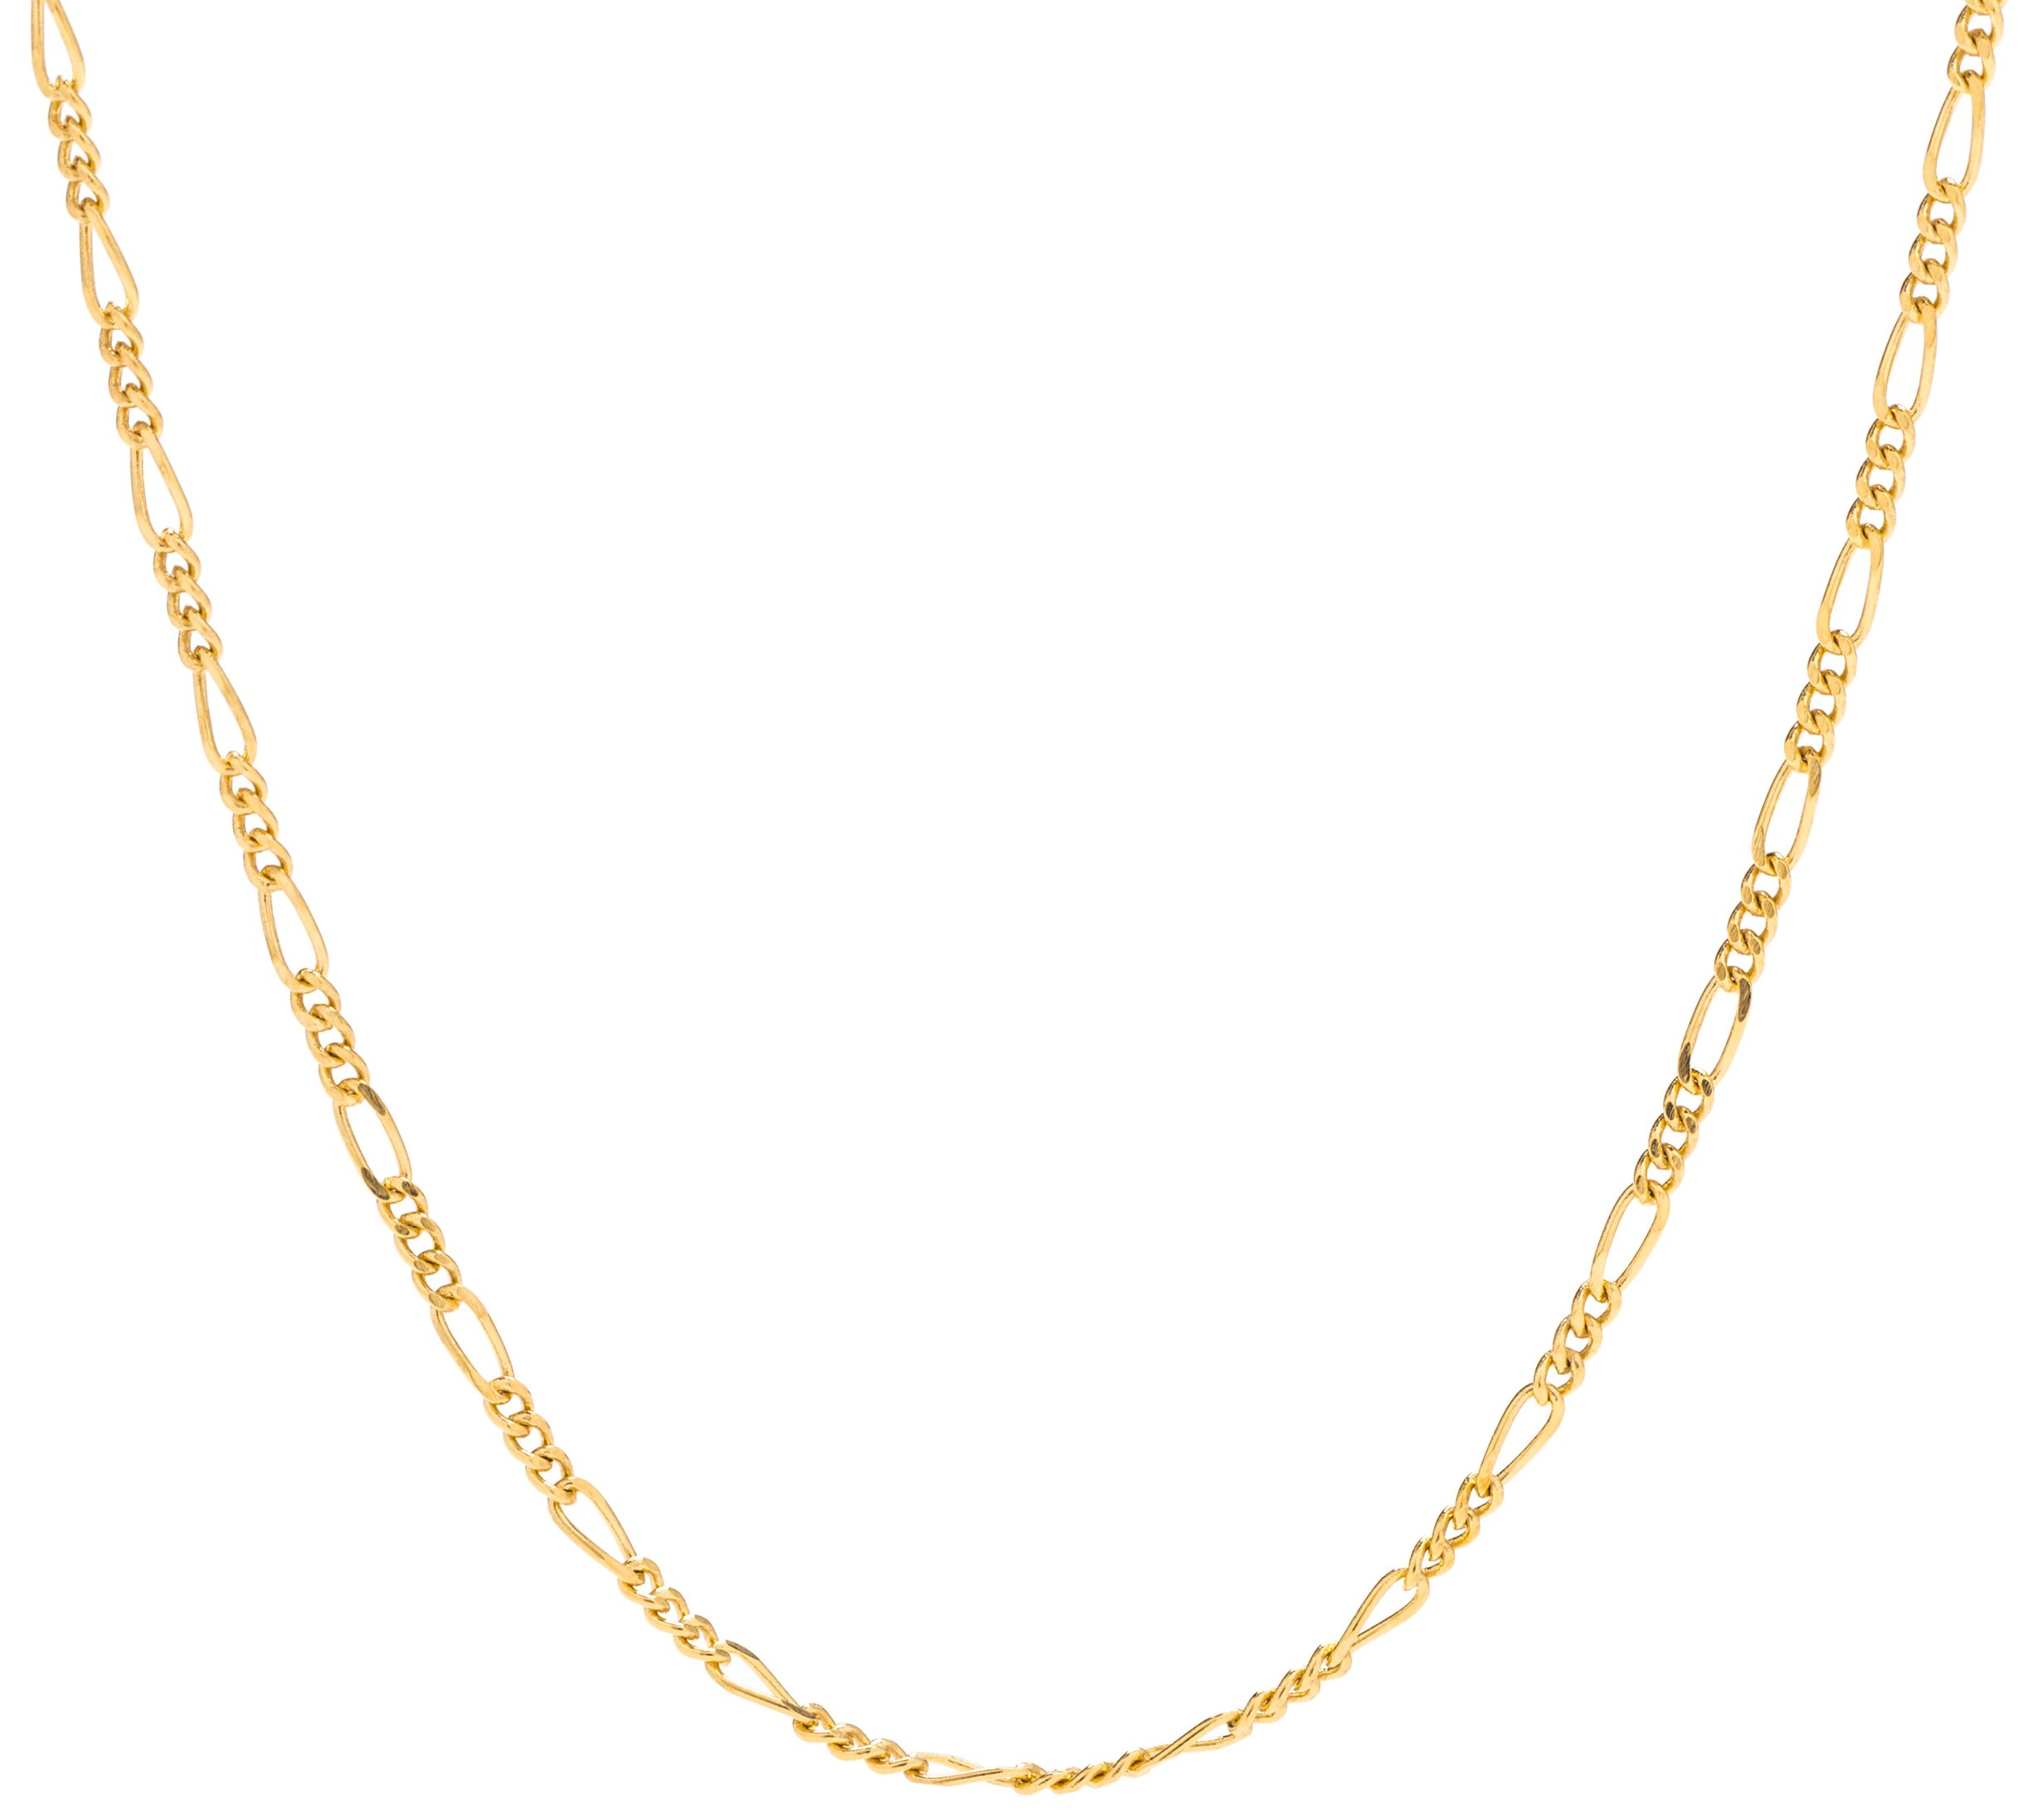 Lifetime Jewelry Figaro Chain 1.5MM, 24K Gold with Inlaid Bronze, Premium Fashion Jewelry, Pendant Necklace Made Thin For Charms, Guaranteed for Life, Short 16 Inches